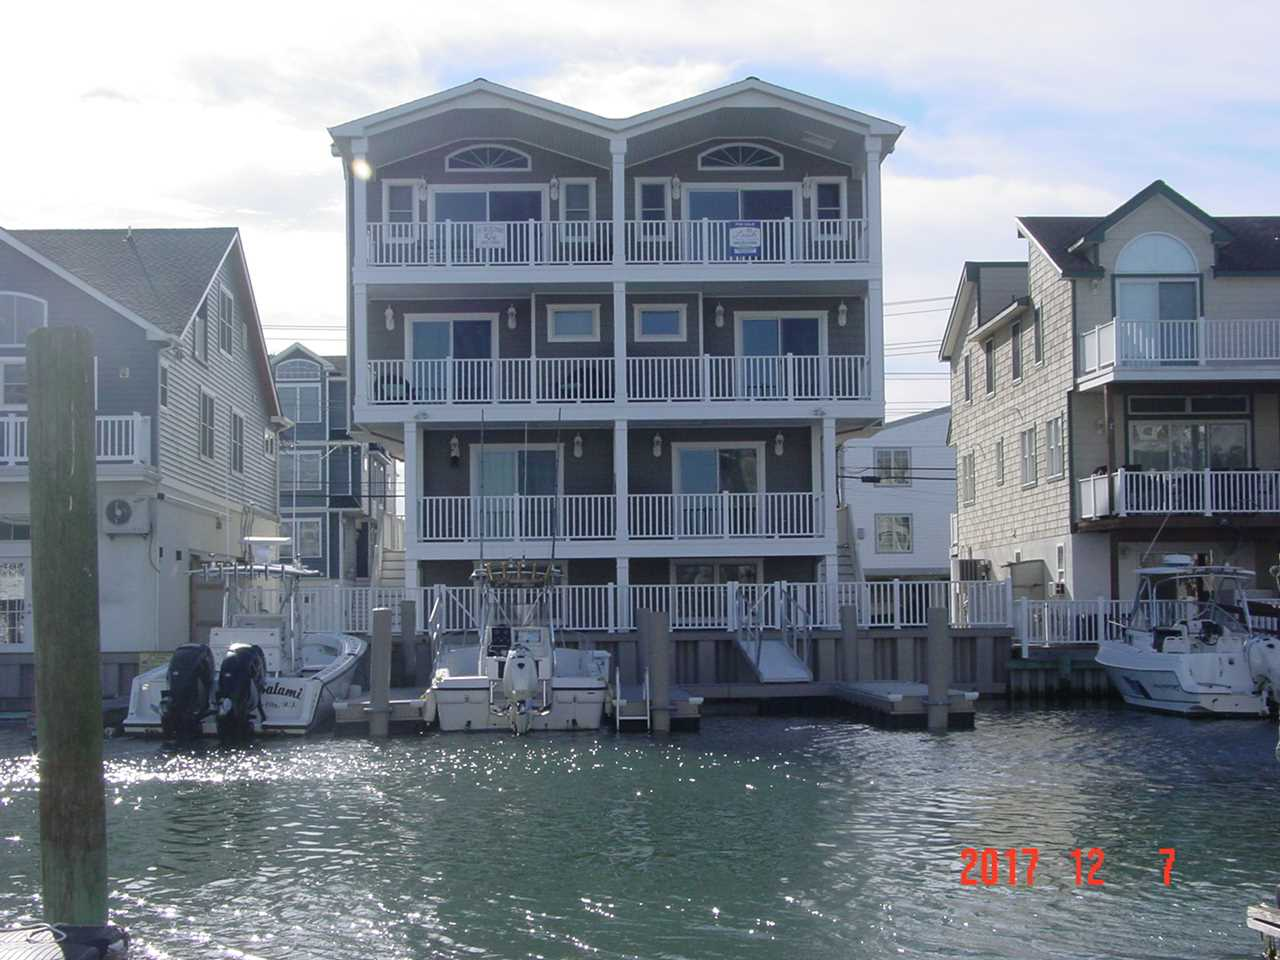 333 44th Place West, Sea Isle City, NJ 08243